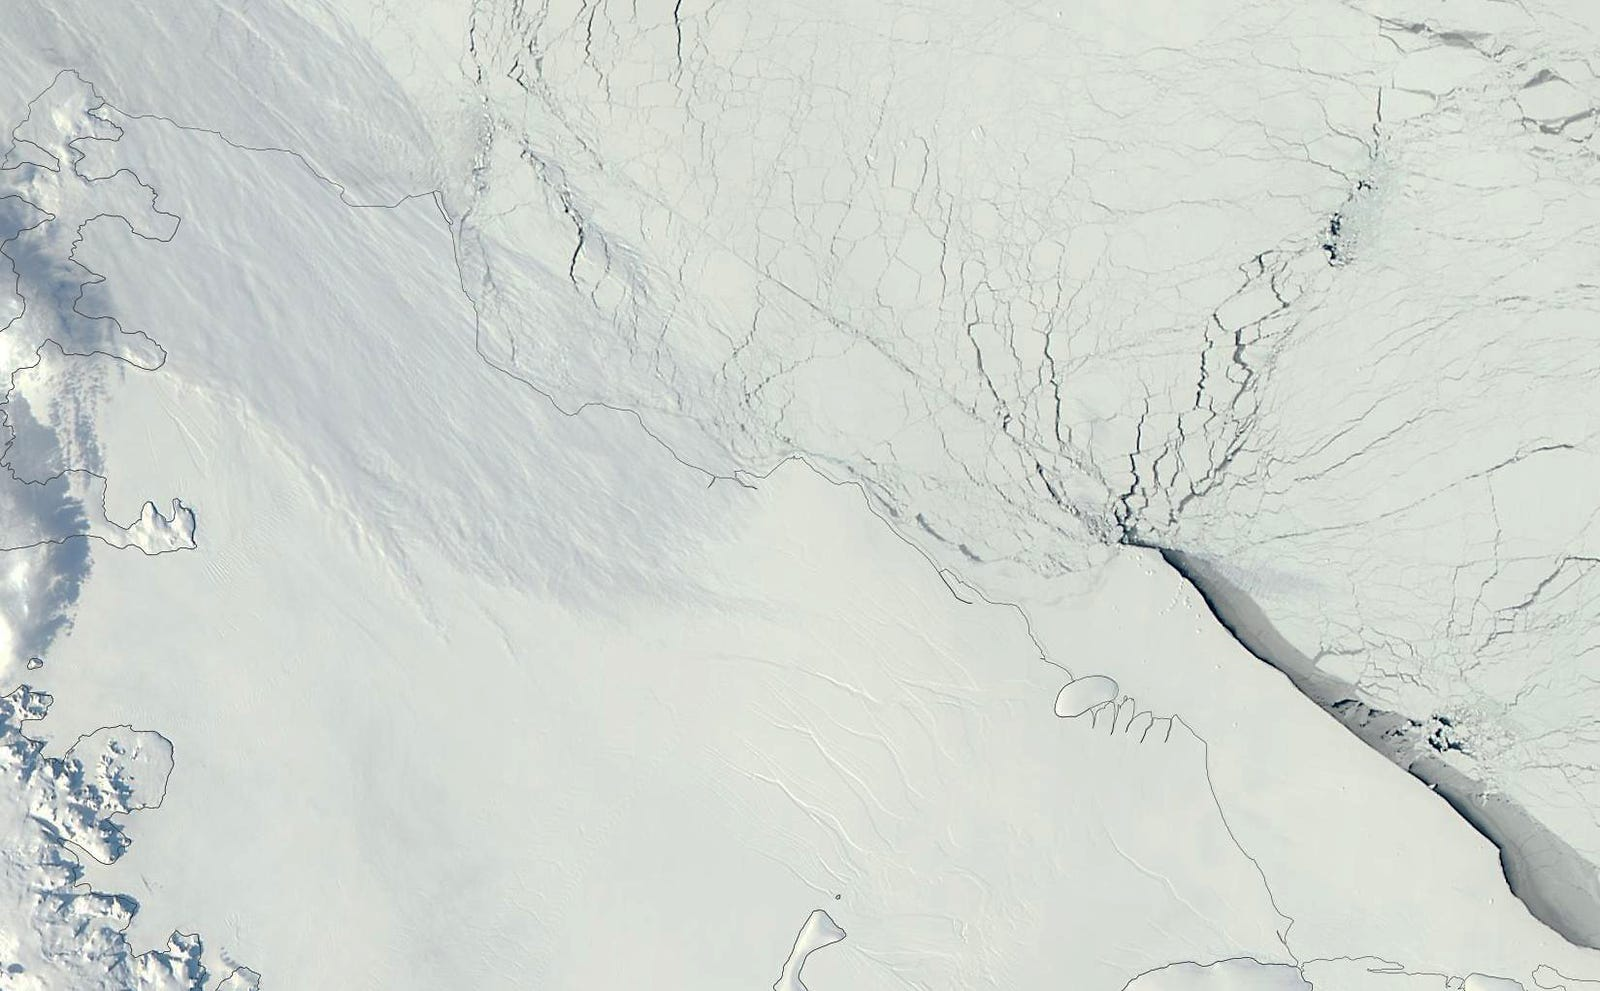 The Larsen C ice shelf in 2012, just a blank slate.